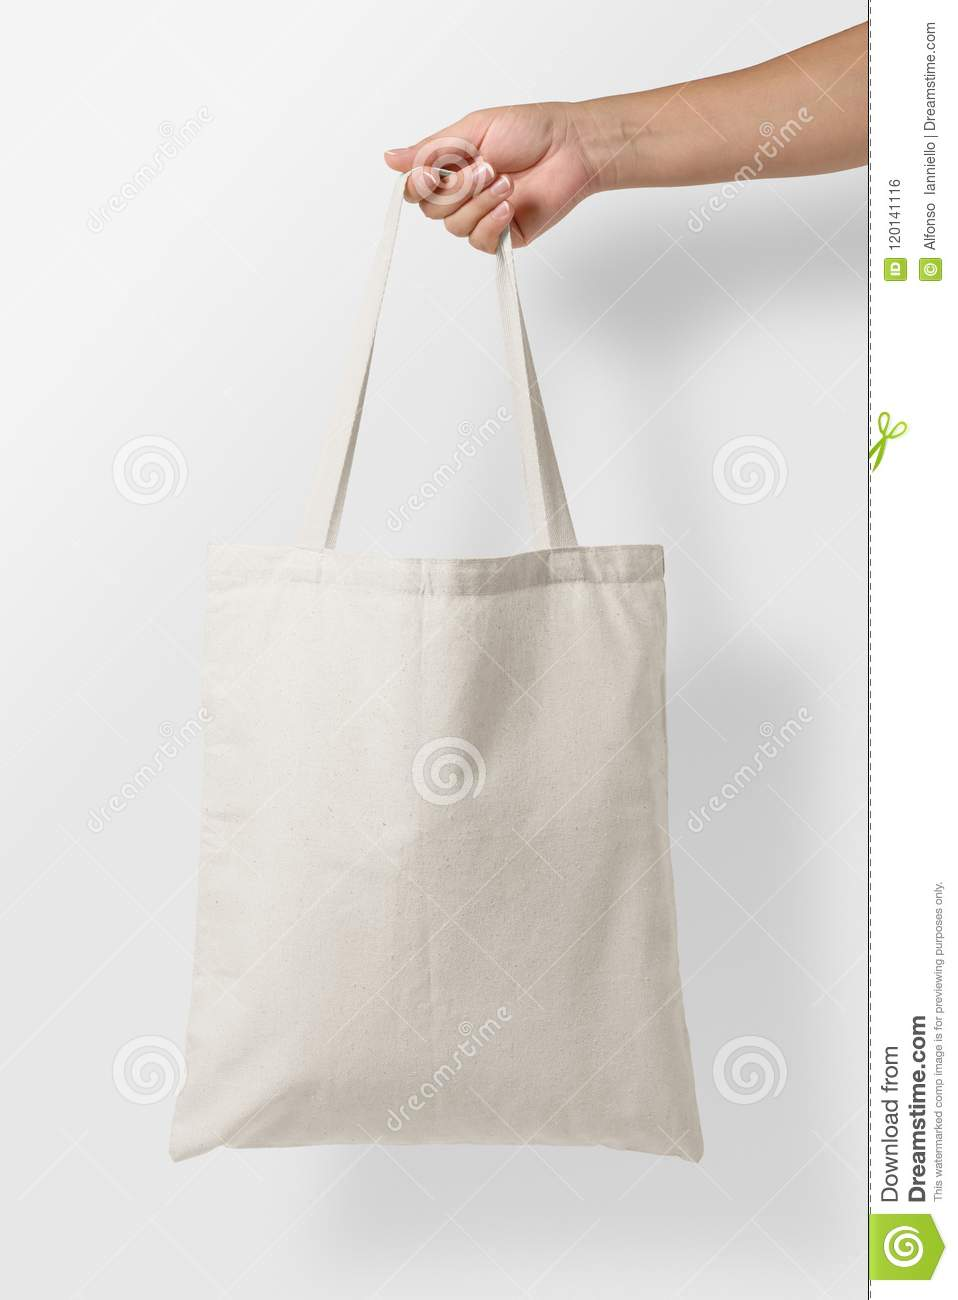 Mockup of female hand holding a blank Tote Canvas Bag on light grey background.